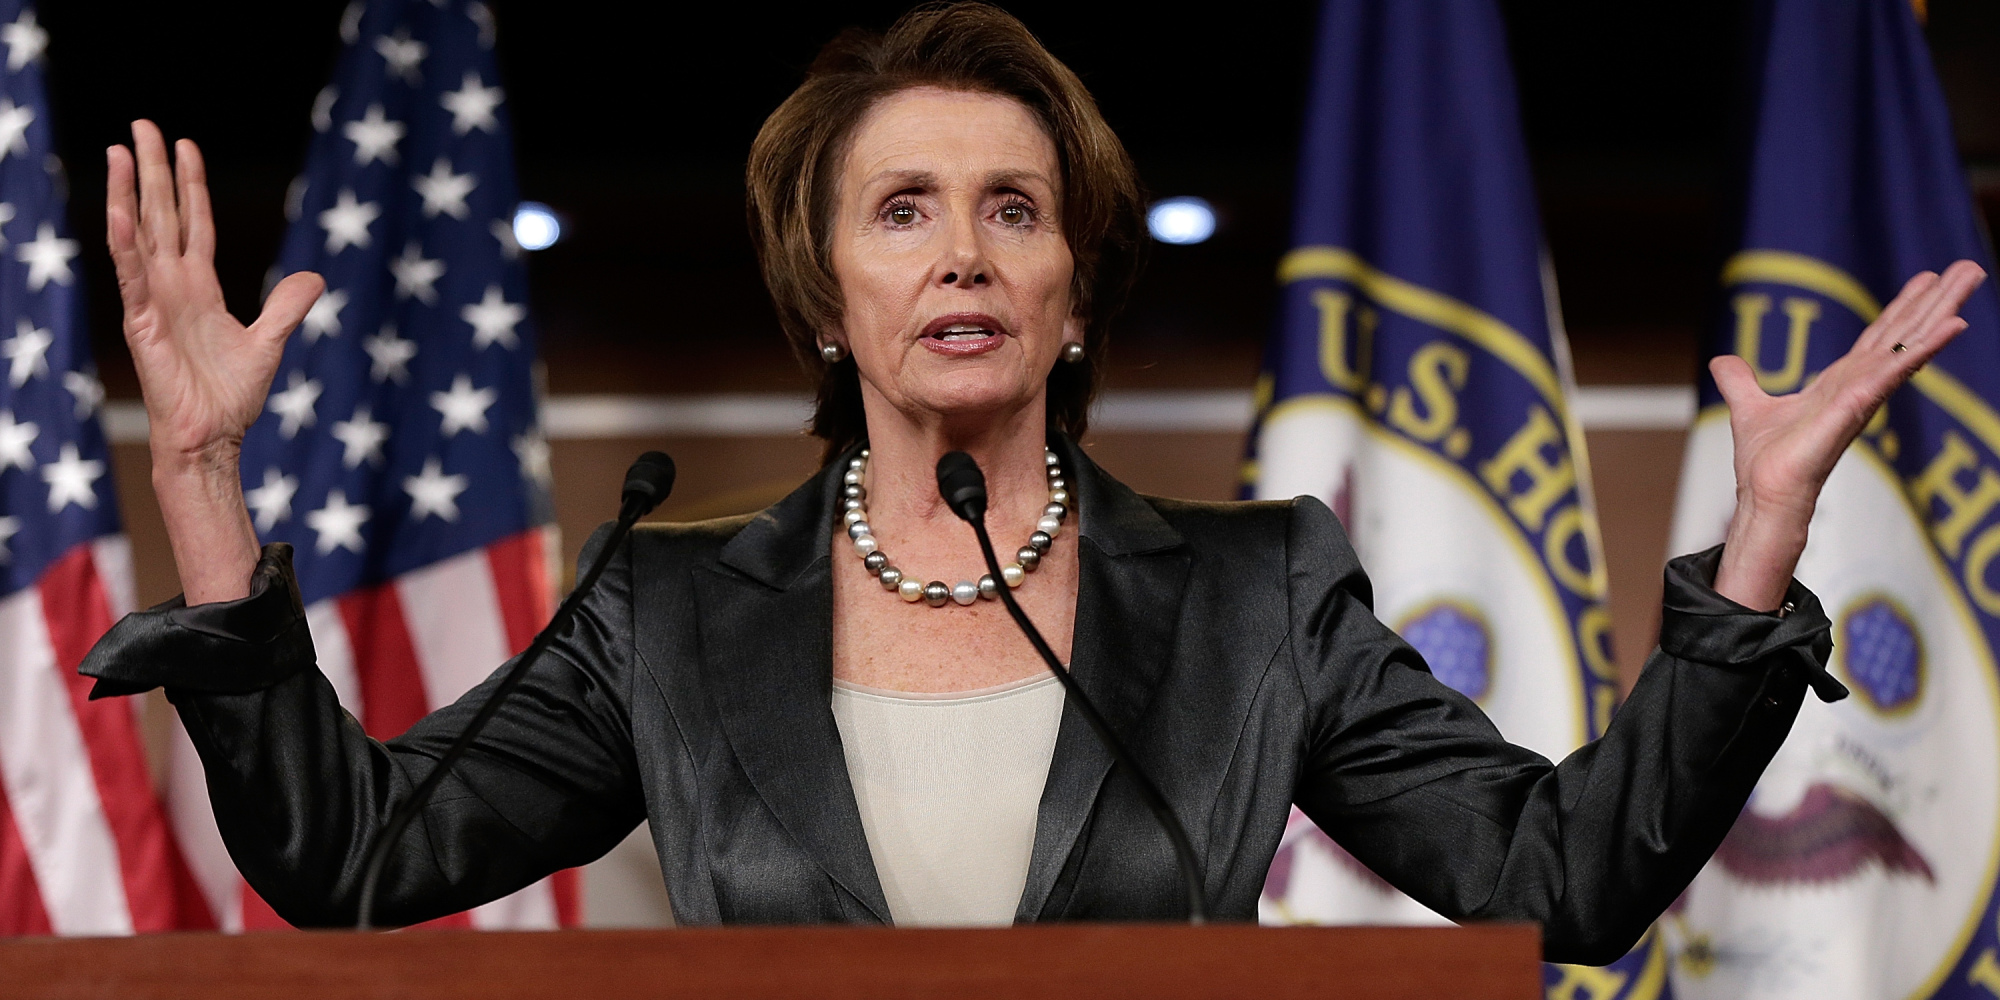 GOP's 2018 Strategy: Continue Linking Dem Candidates to Pelosi